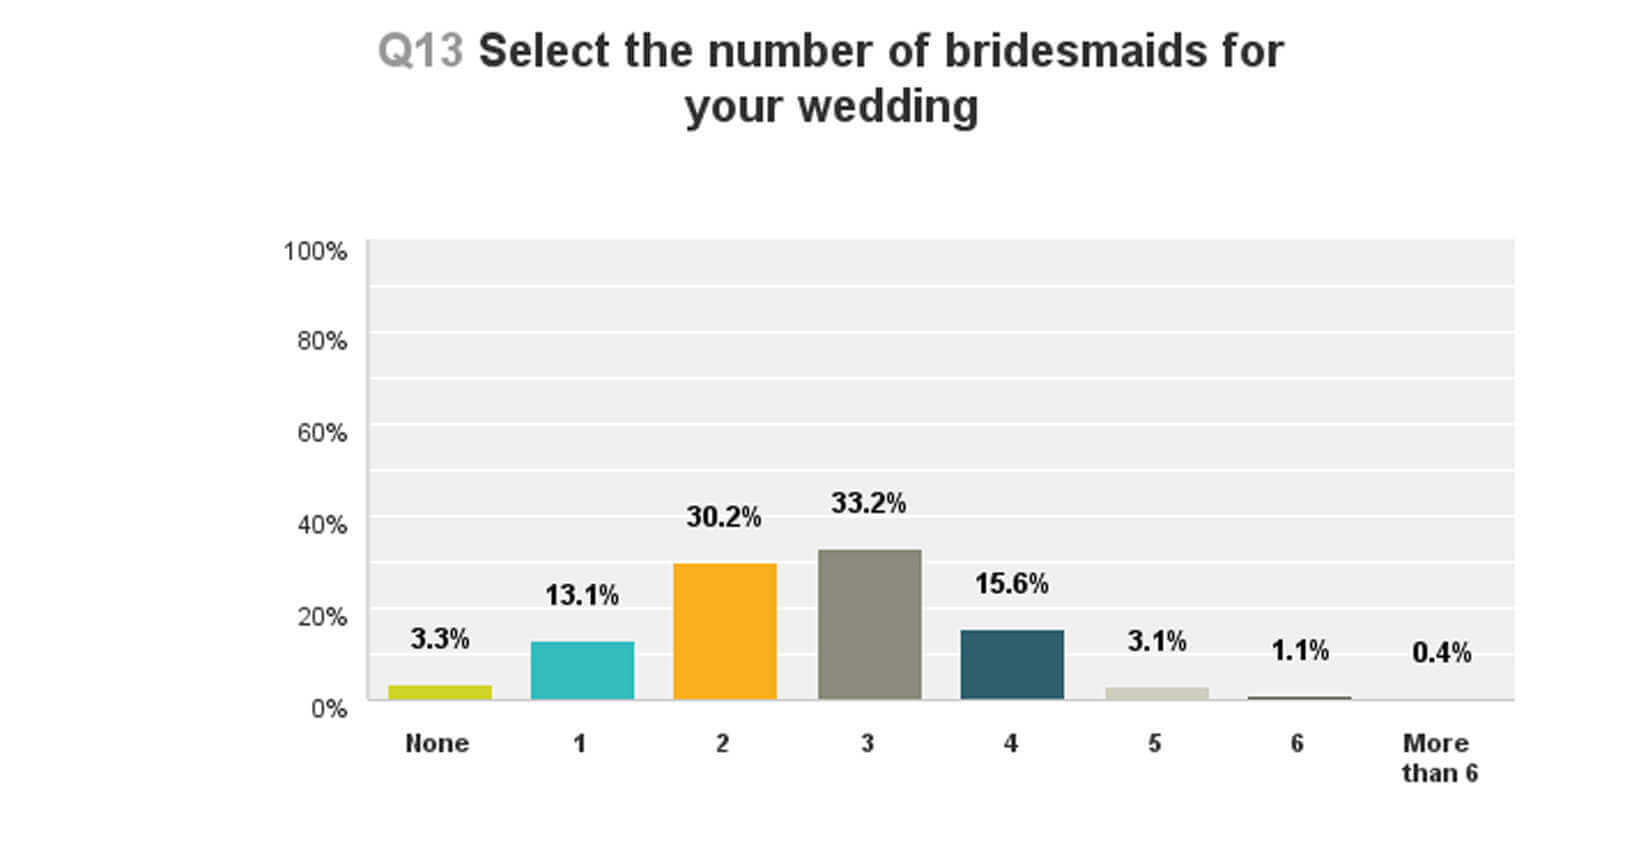 how many bridesmaids will you have at your wedding